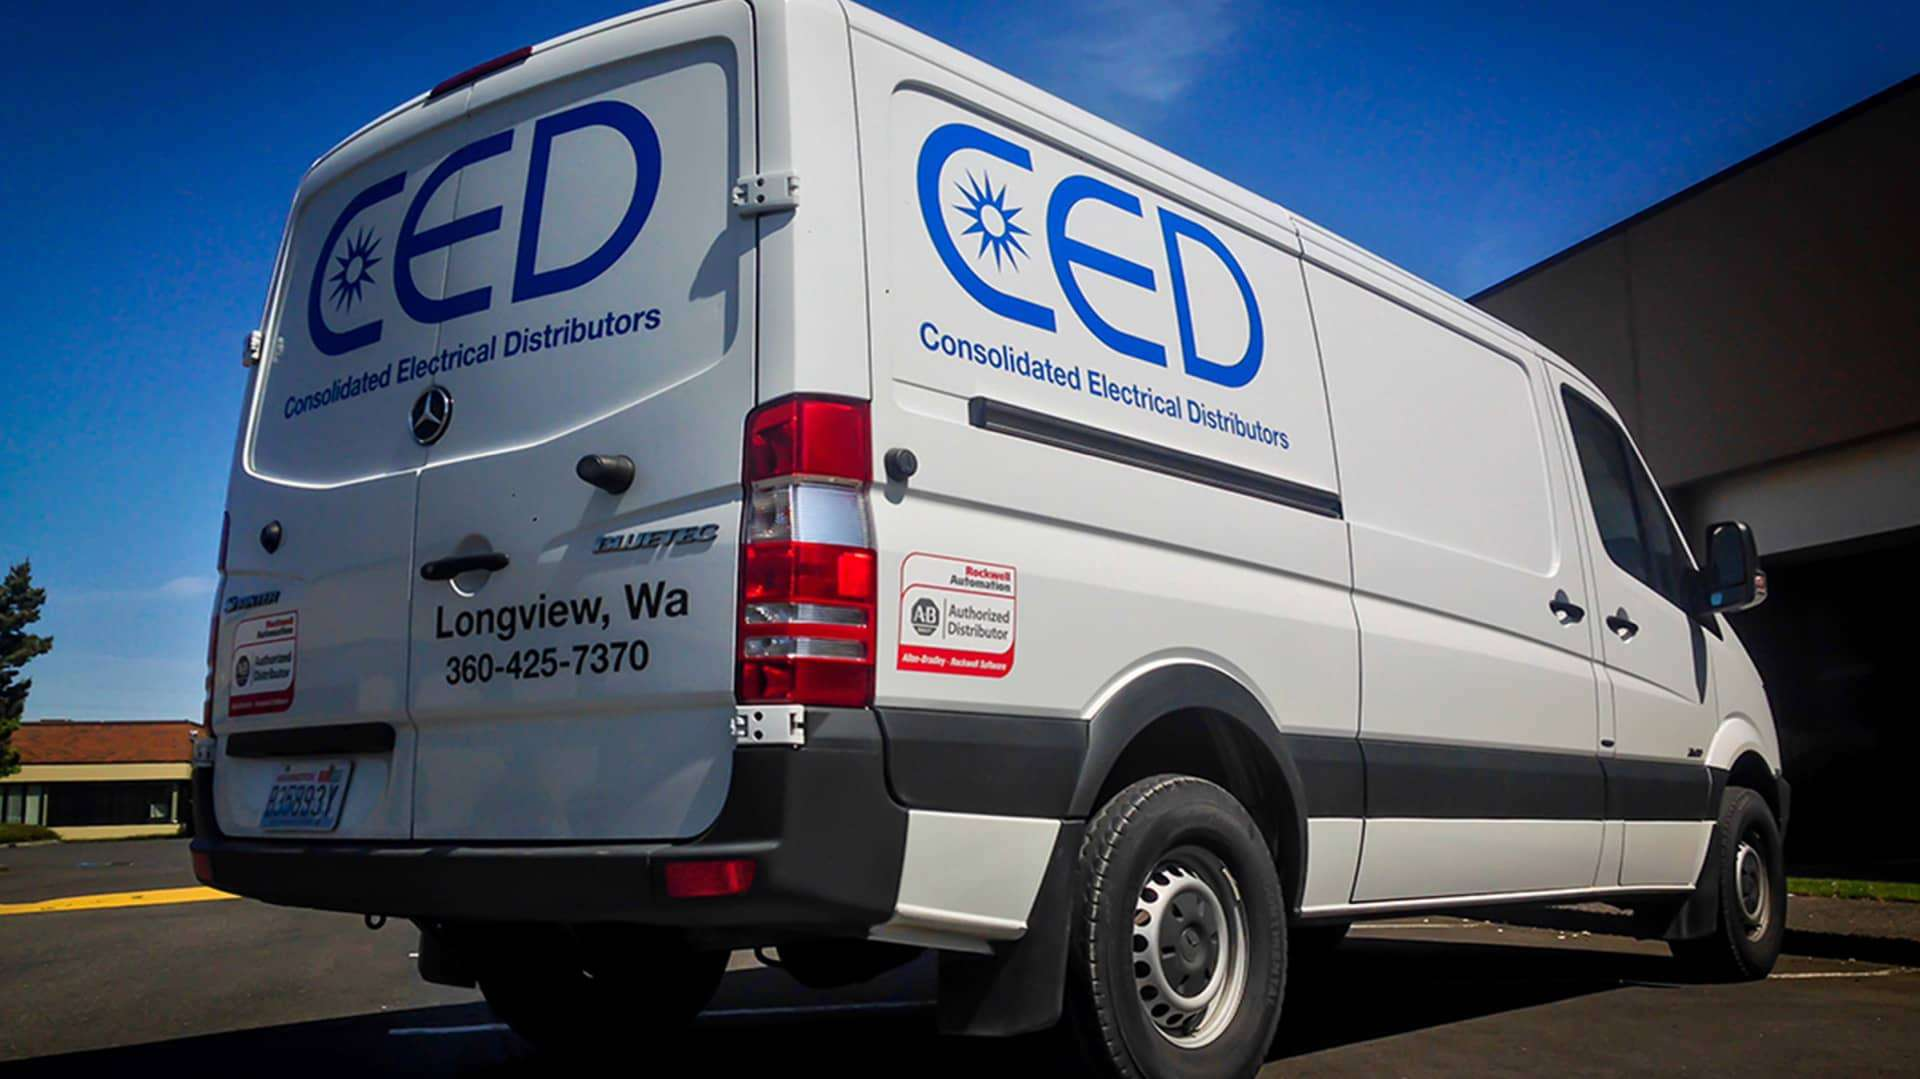 Fleet Graphics for CED on a Mercedes Sprinter